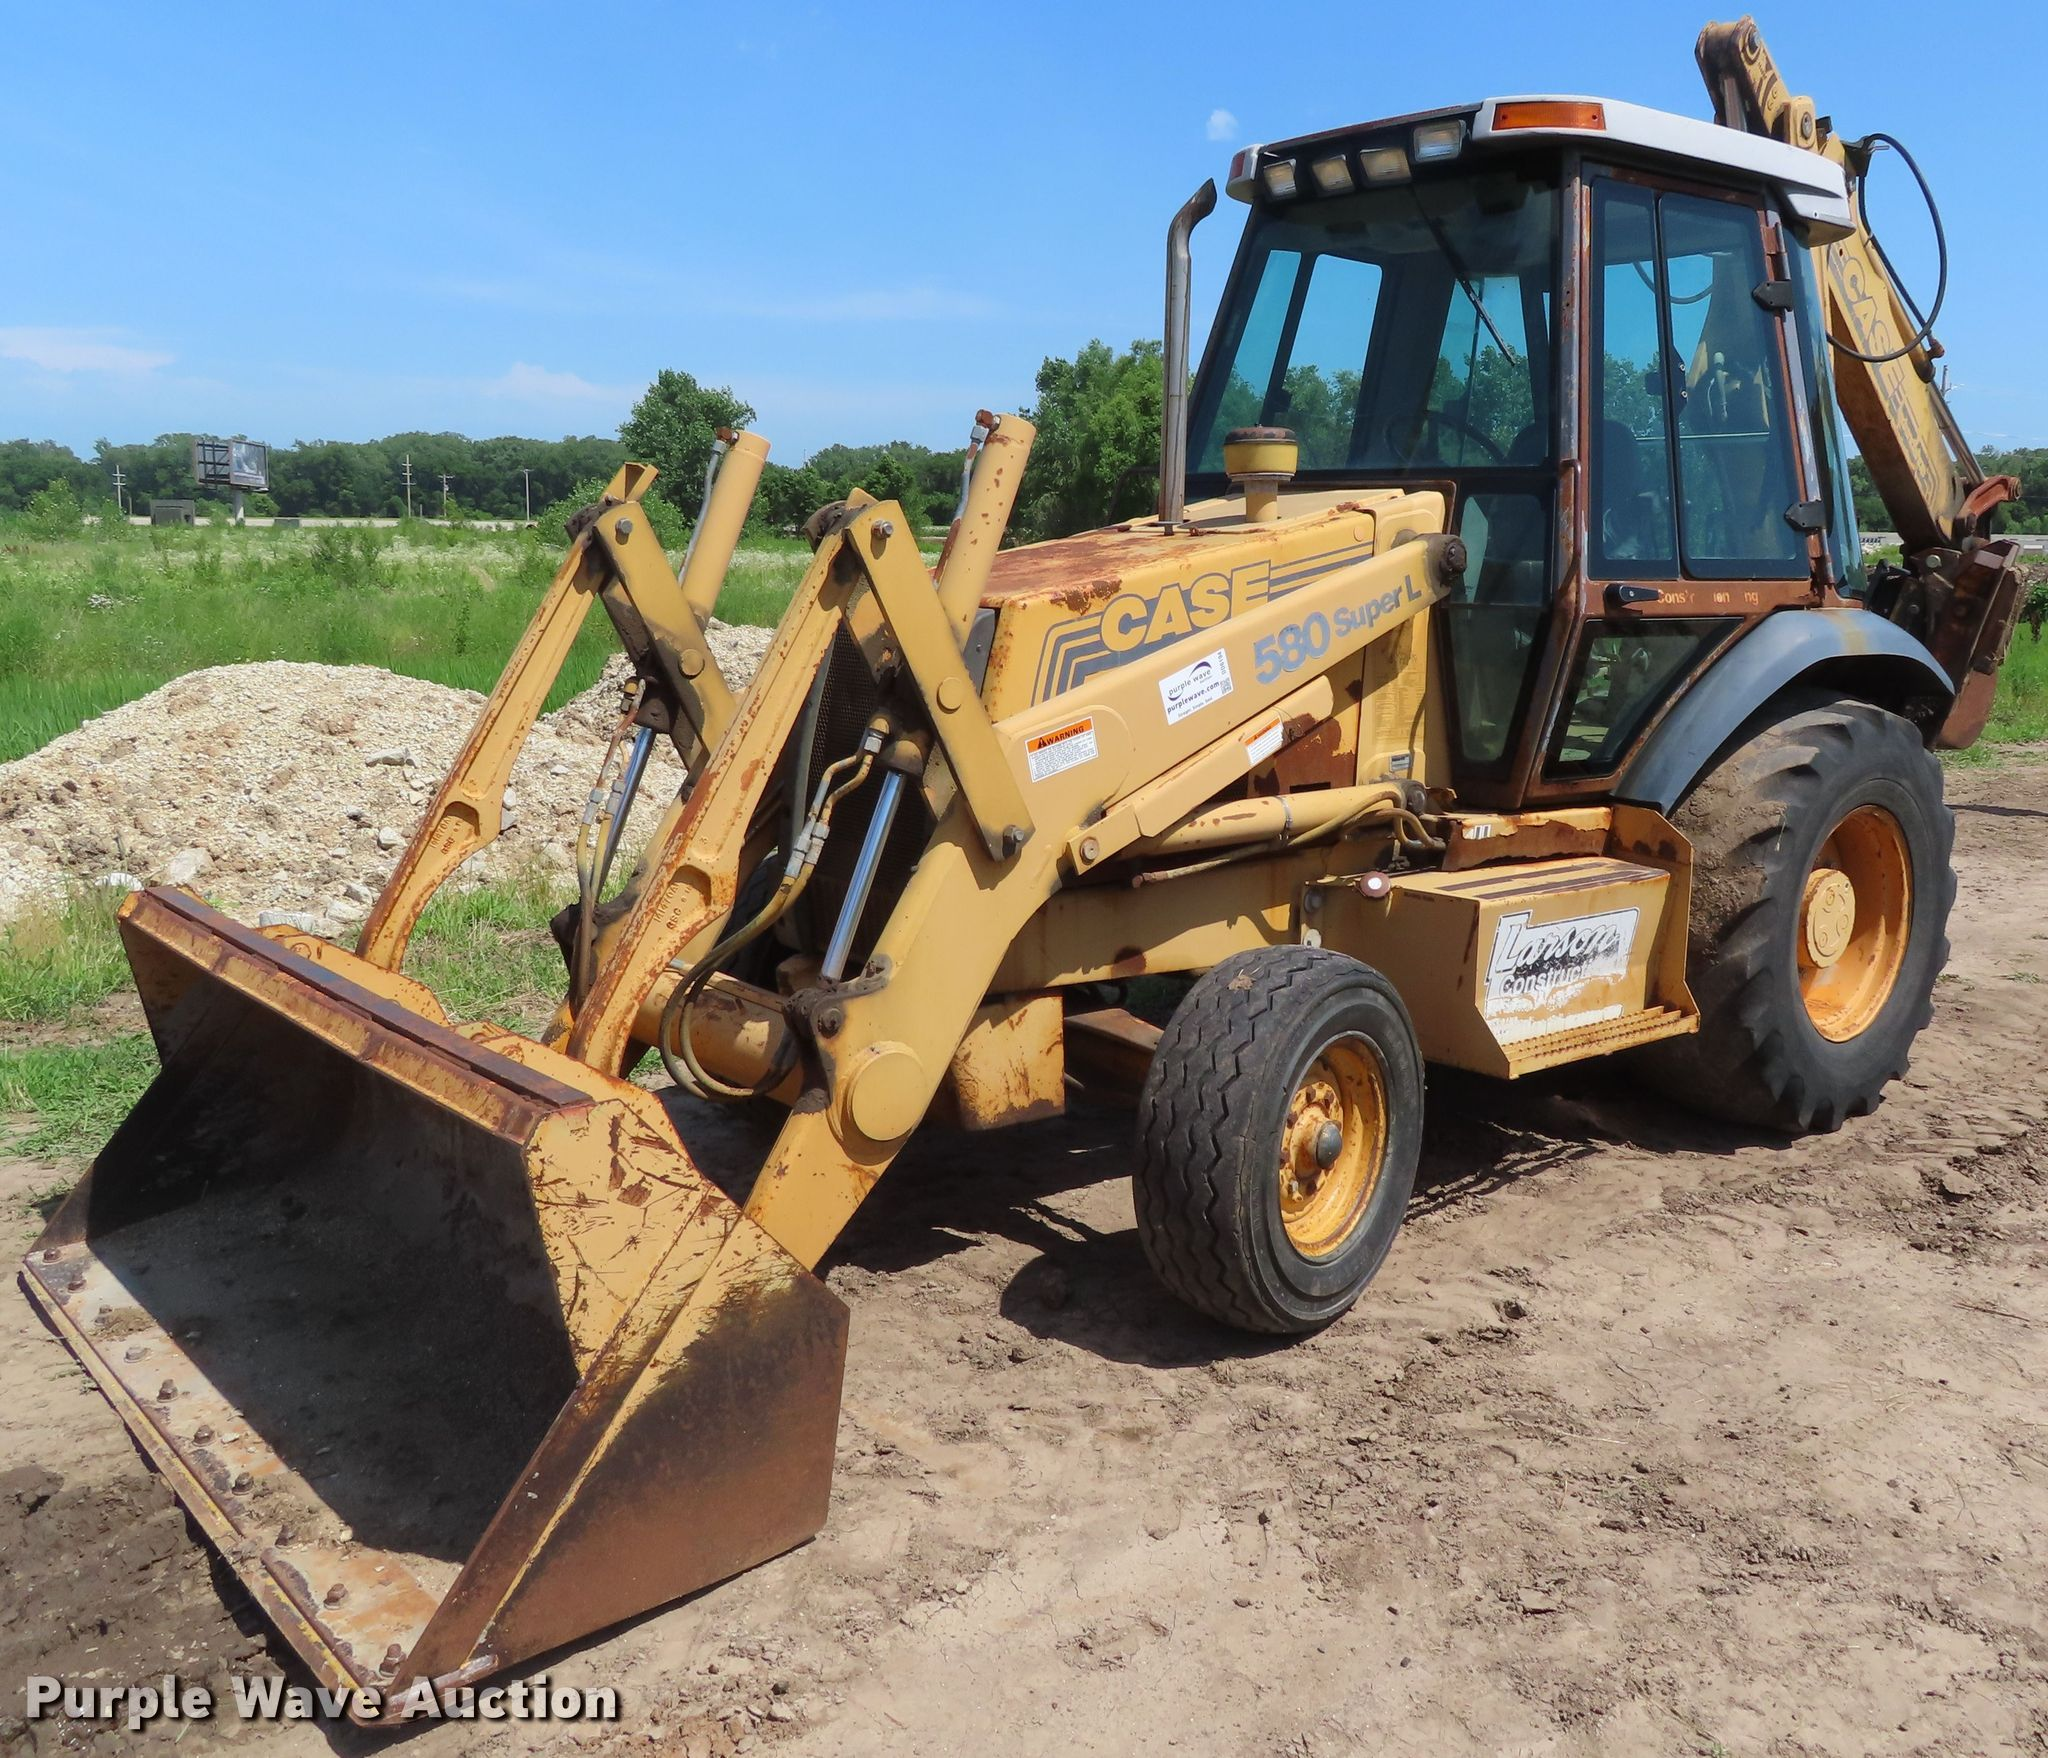 1996 Case 580 Super L backhoe | Item DD6194 | SOLD! July 25